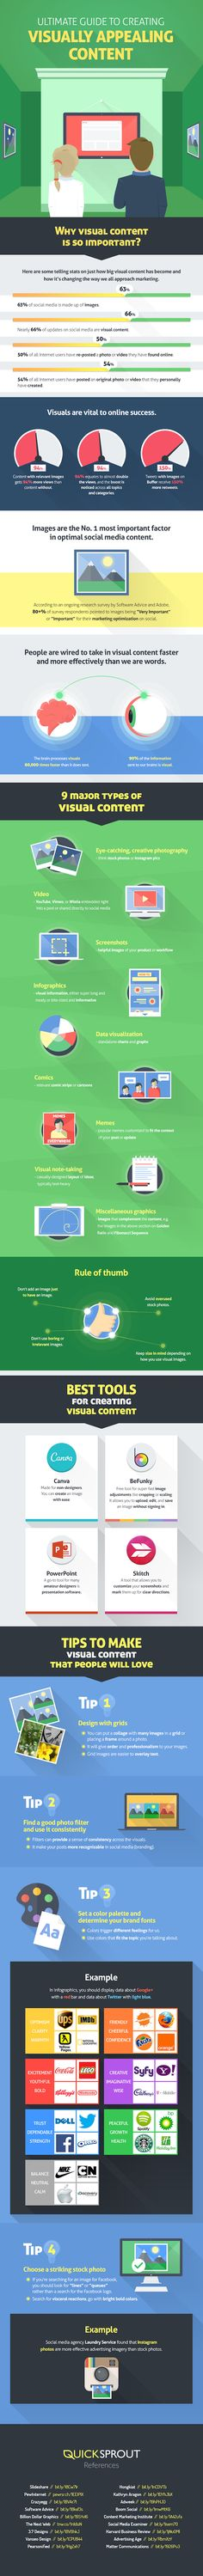 A Handy Little Guide to Creating Visual Content for Social Media [Infographic]